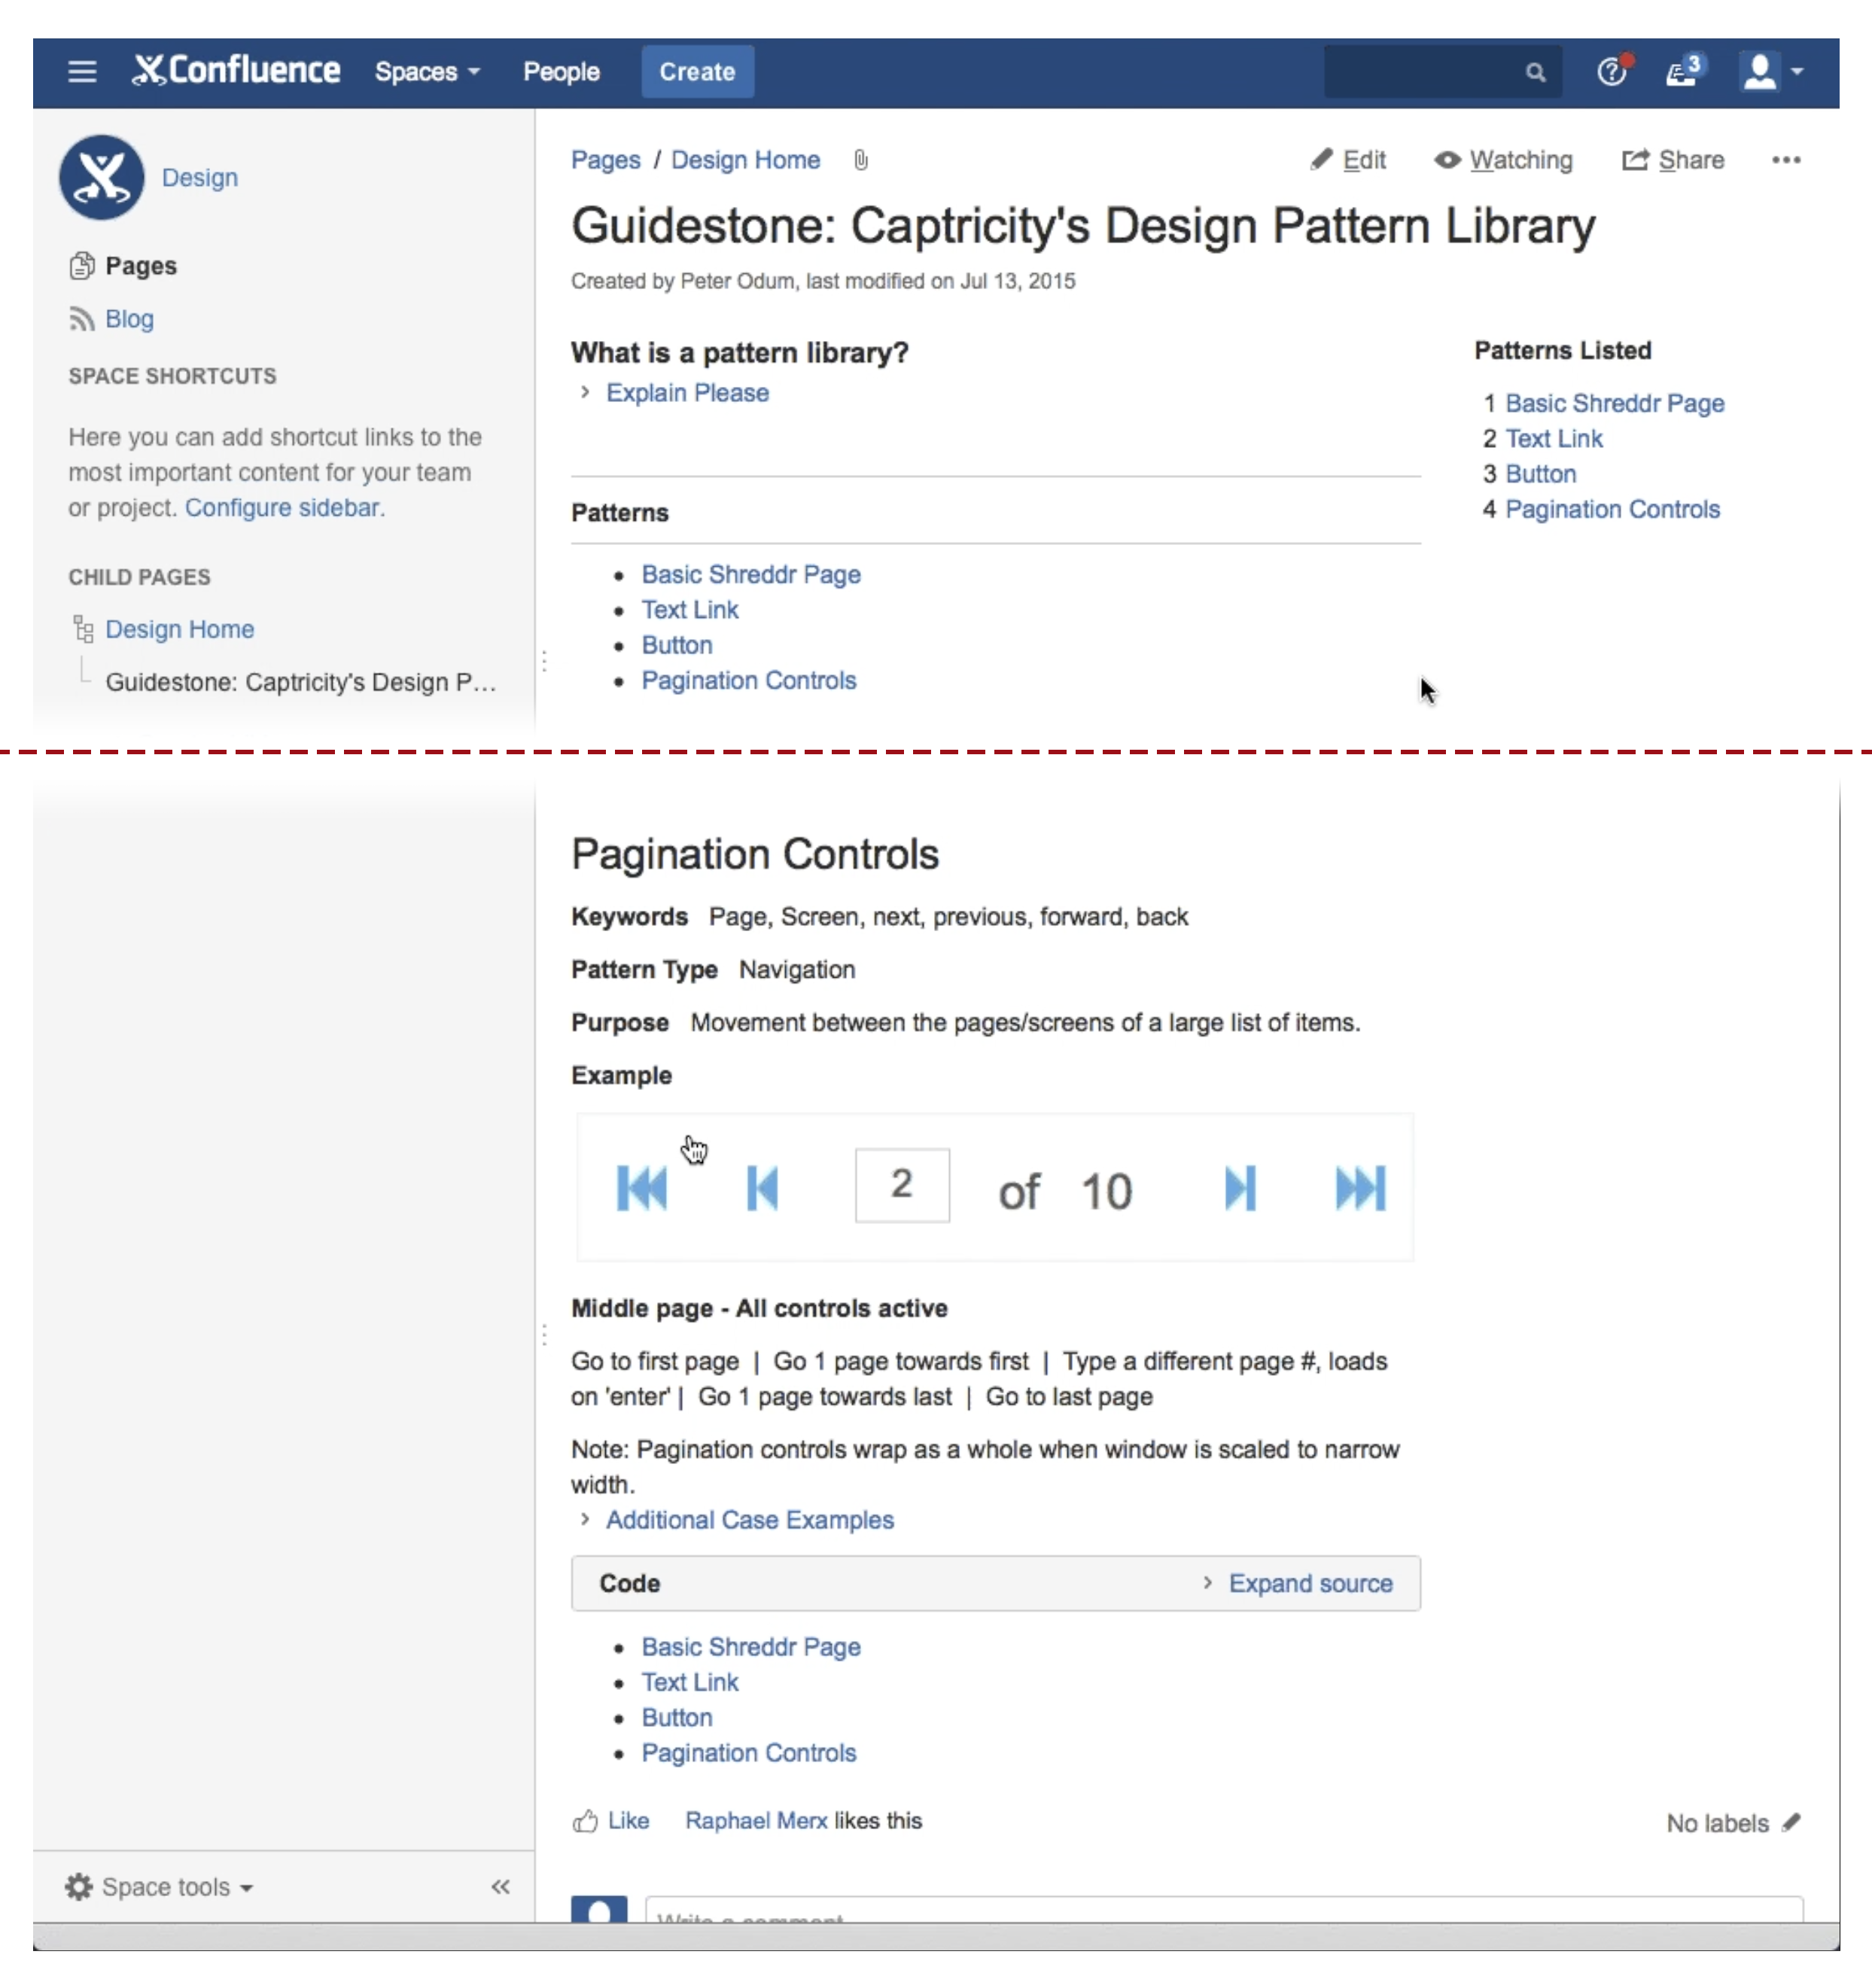 PatternLibrary01a